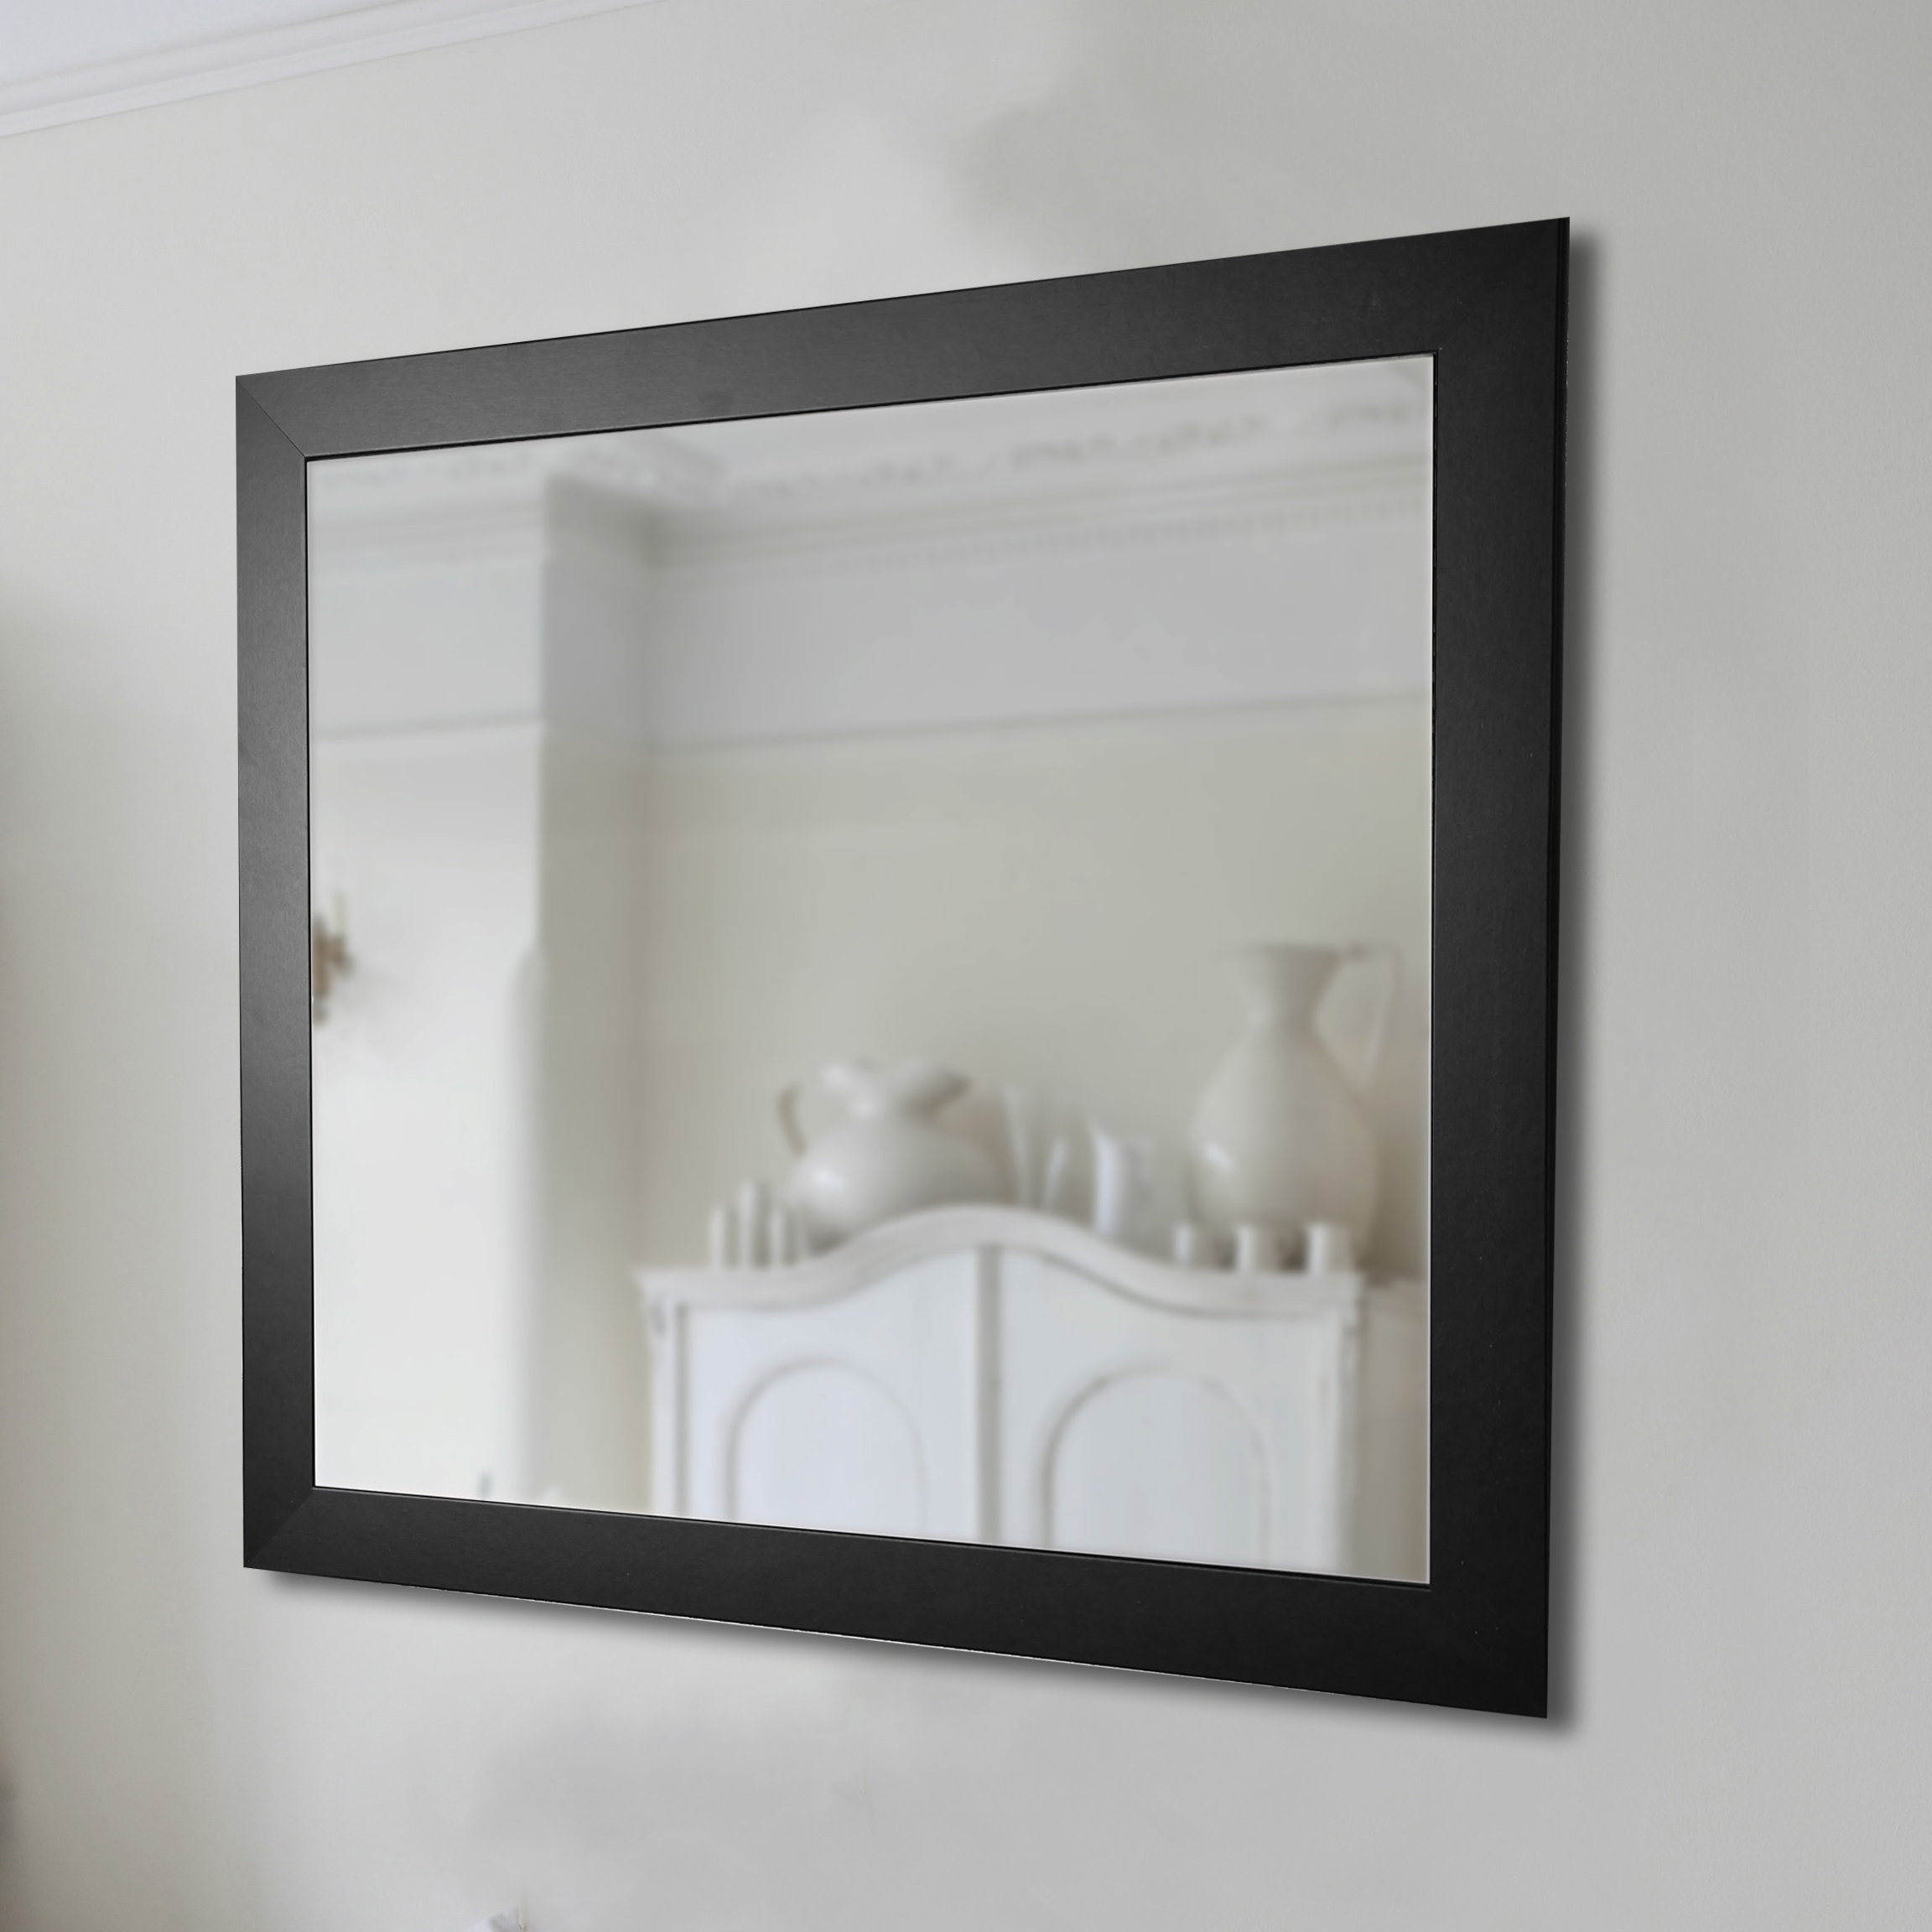 Preferred Accent Wall Mirrors With Regard To American Made Accent Wall Mirror (View 11 of 20)